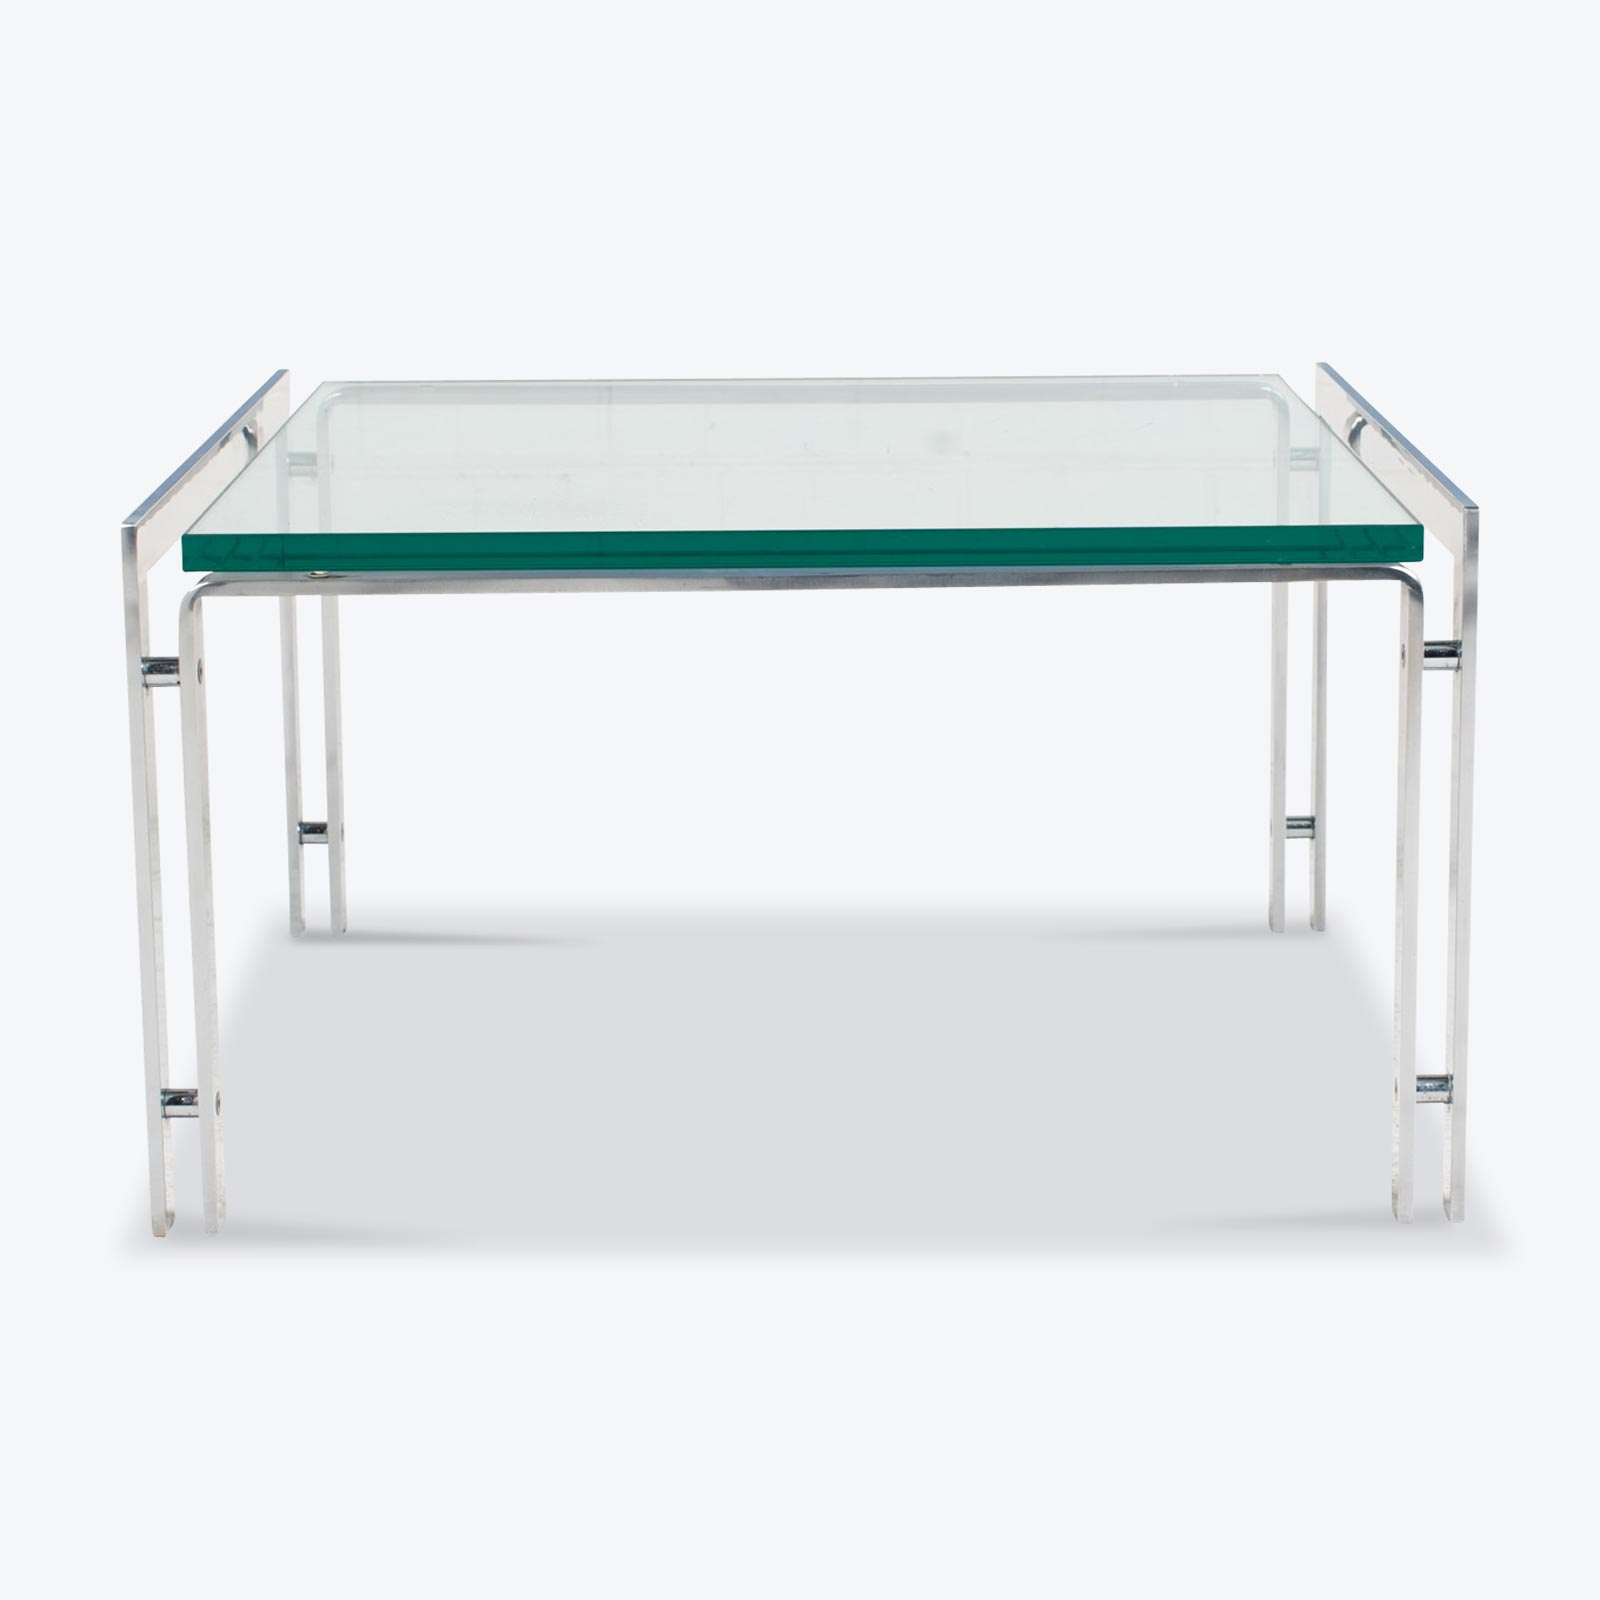 M1 Coffee Table By Hank Kwint For Metaform In Chrome 1970s Netherlands 10